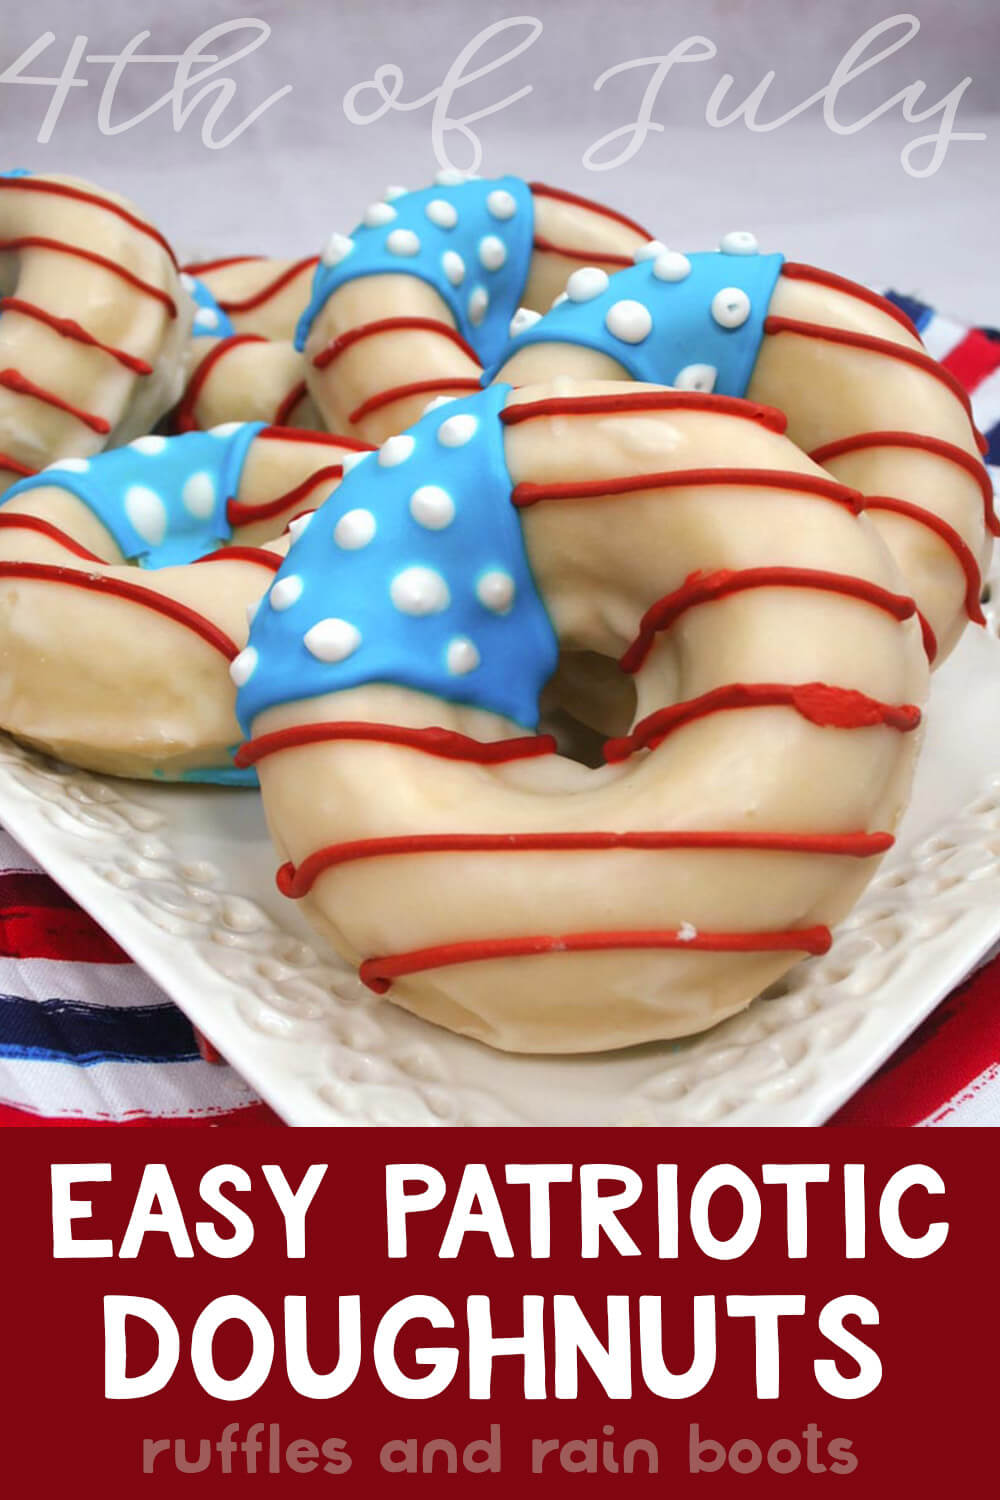 how to make patriotic donuts for 4th of july breakfast on a red white and blue linen with text which reads easy patriotic doughnuts